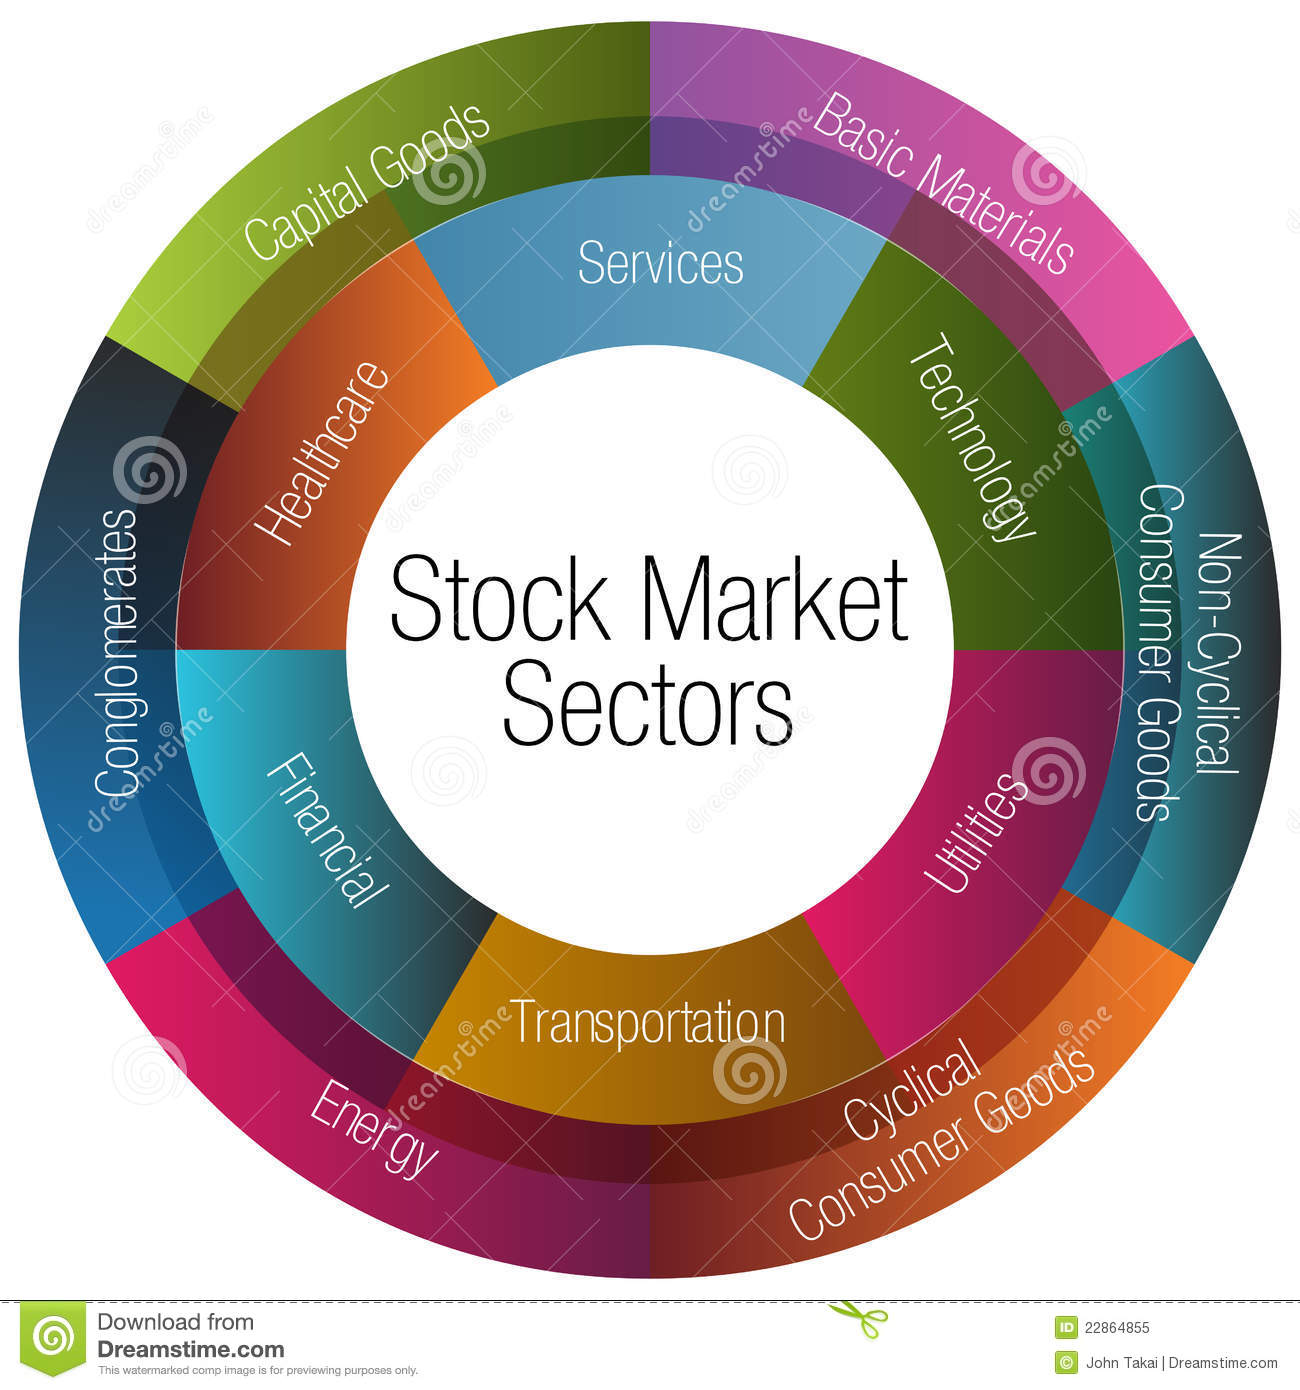 The 11 Sectors of the Stock Market